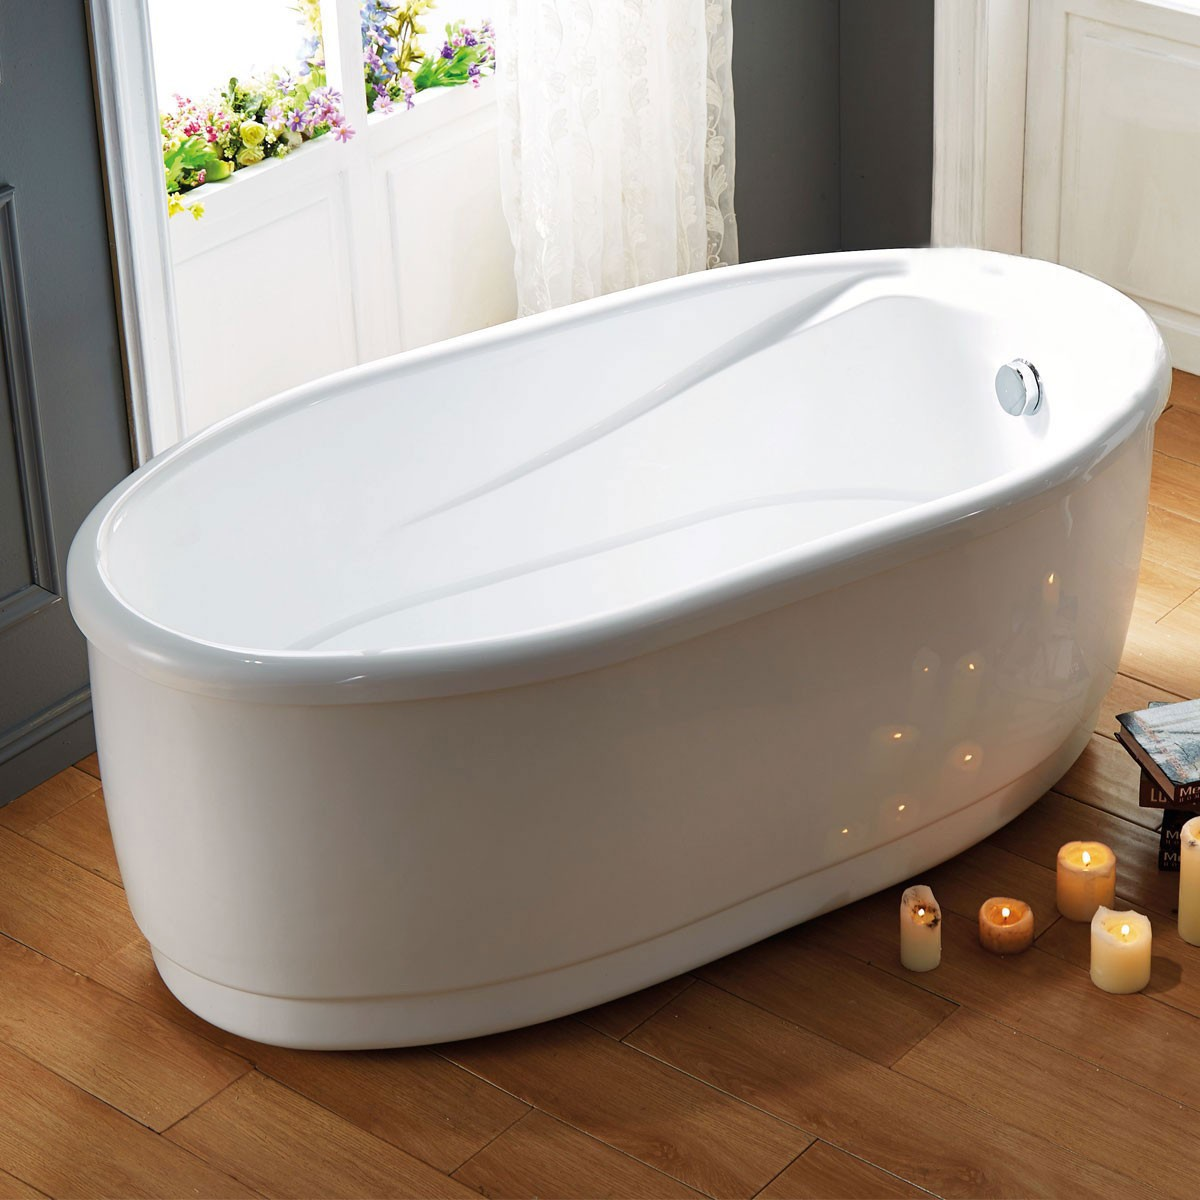 59 In White Acrylic Freestanding Bathtub (DK-Q132A)